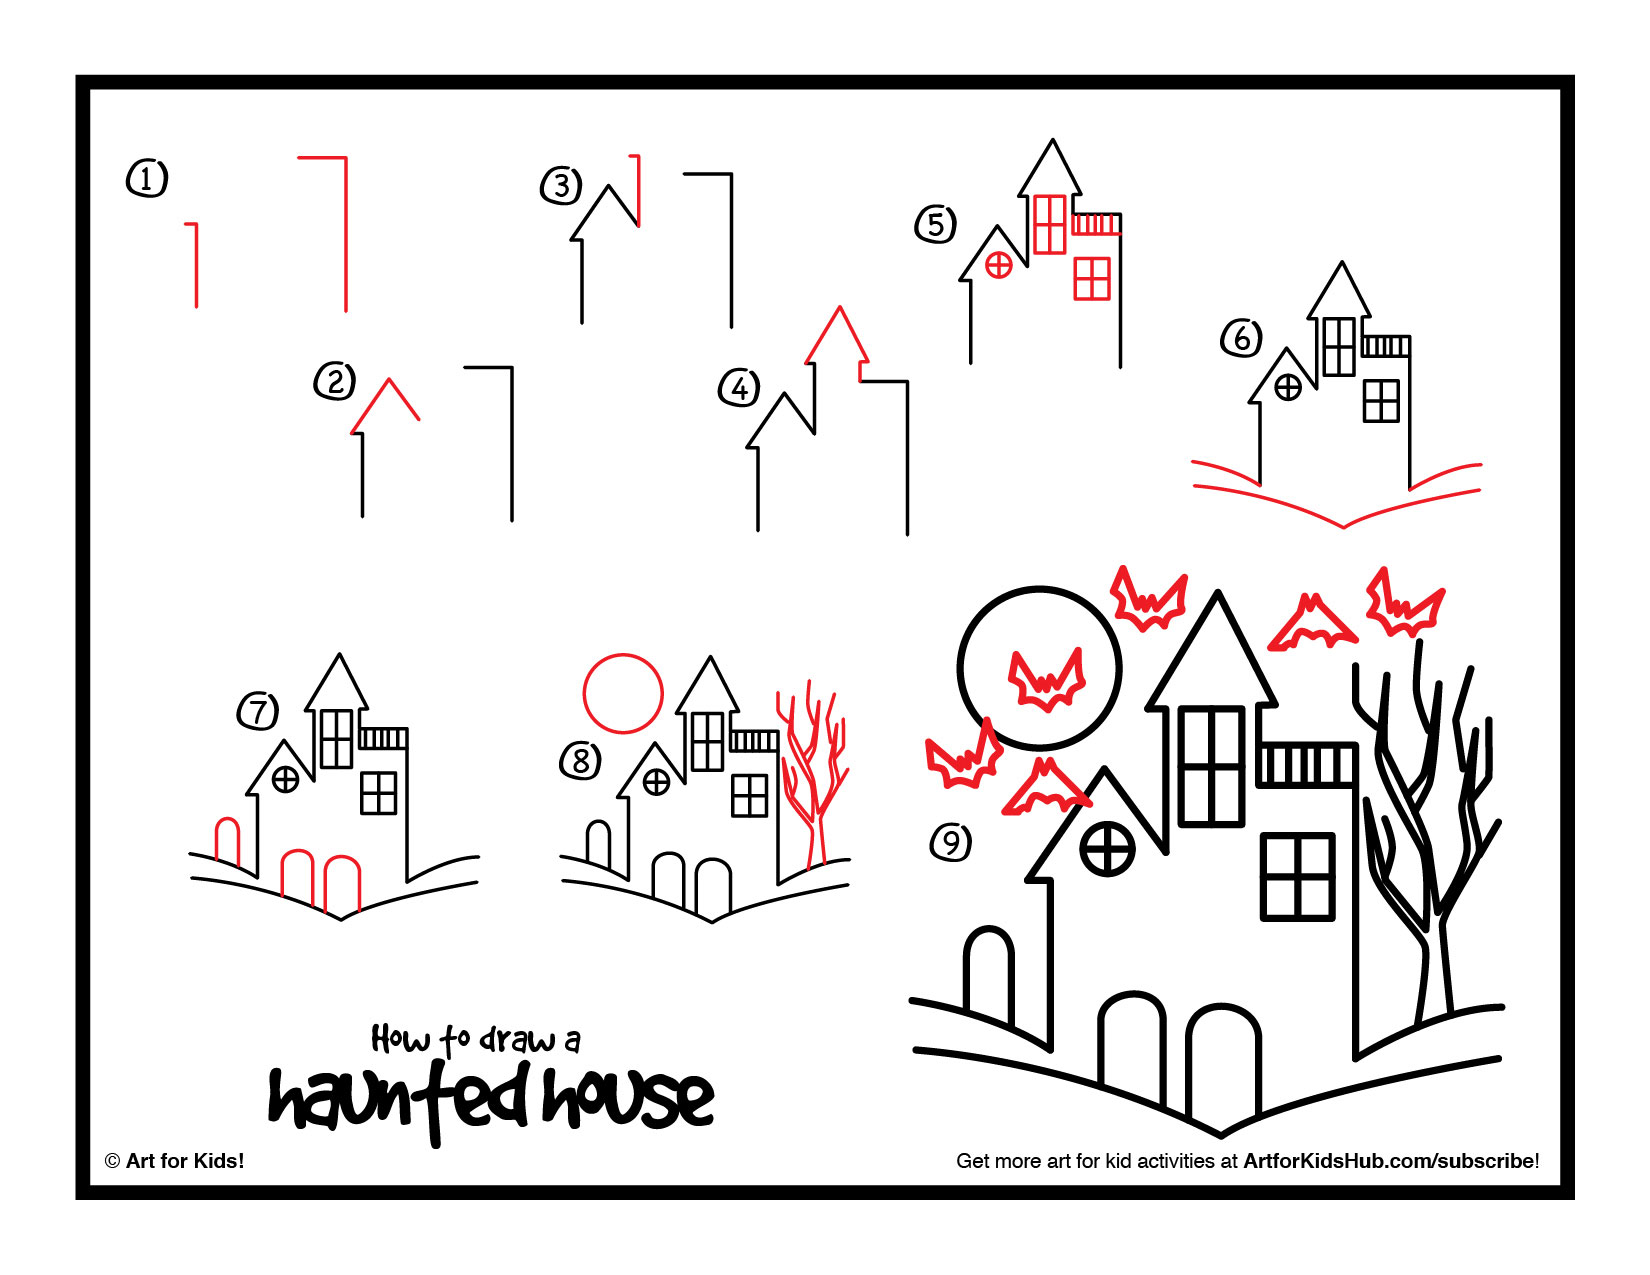 Drawn haunted house step by step How house  Search Google